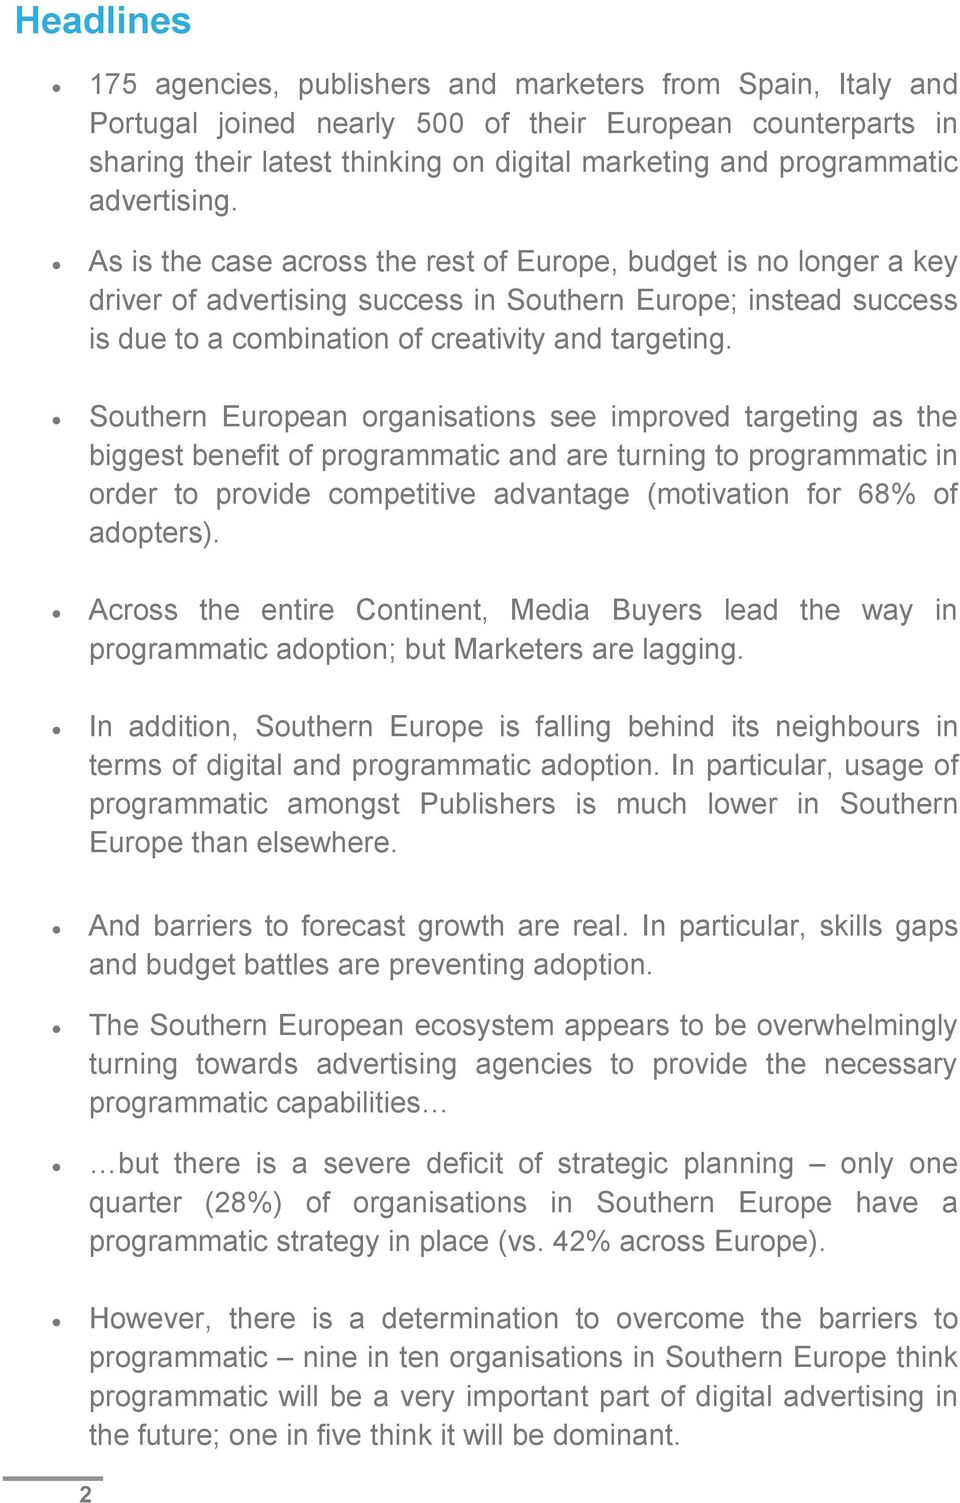 Southern European organisations see improved targeting as the biggest benefit of programmatic and are turning to programmatic in order to provide competitive advantage (motivation for 68% of